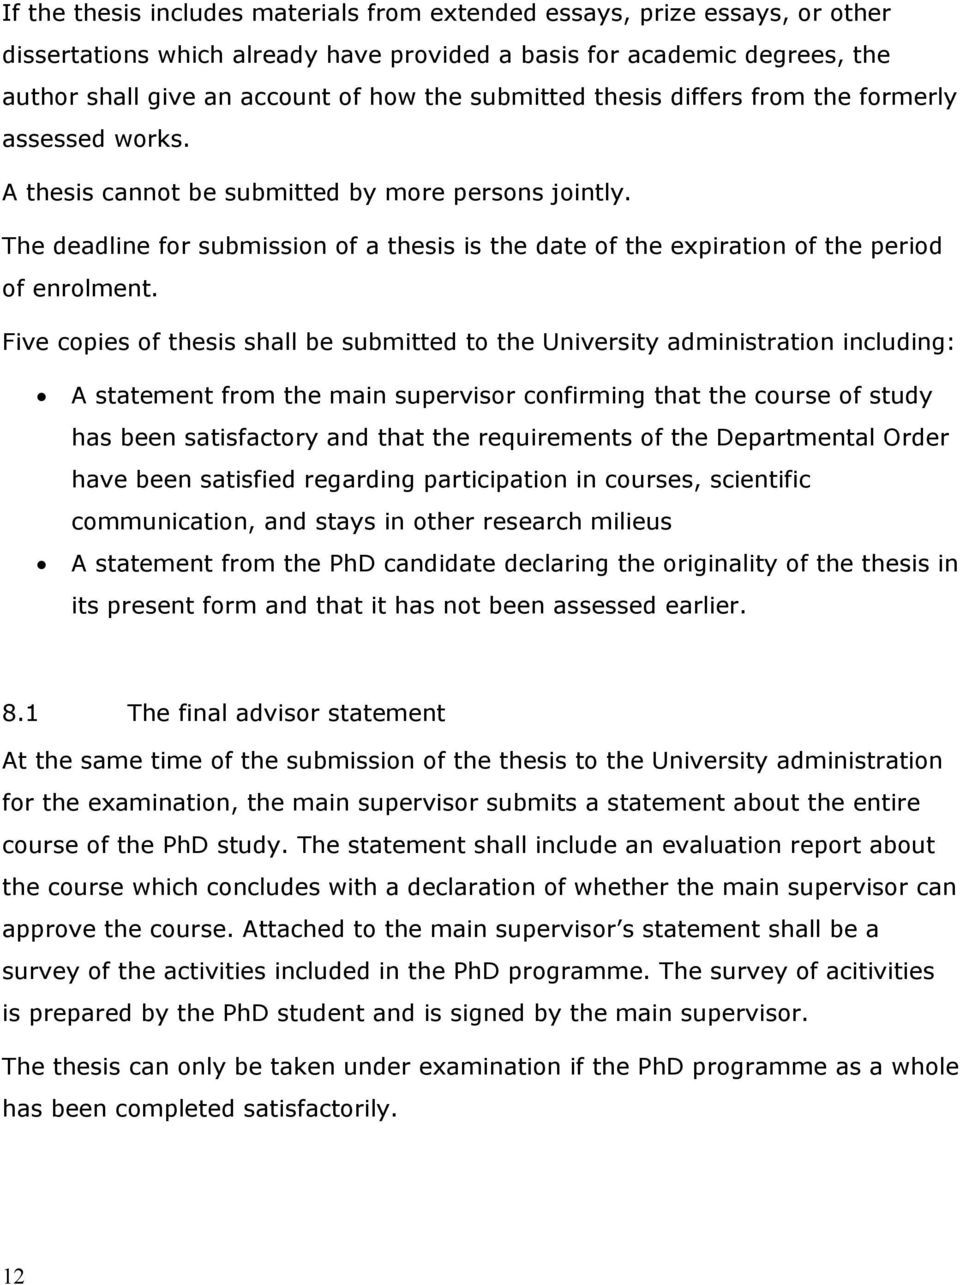 The deadline for submission of a thesis is the date of the expiration of the period of enrolment.